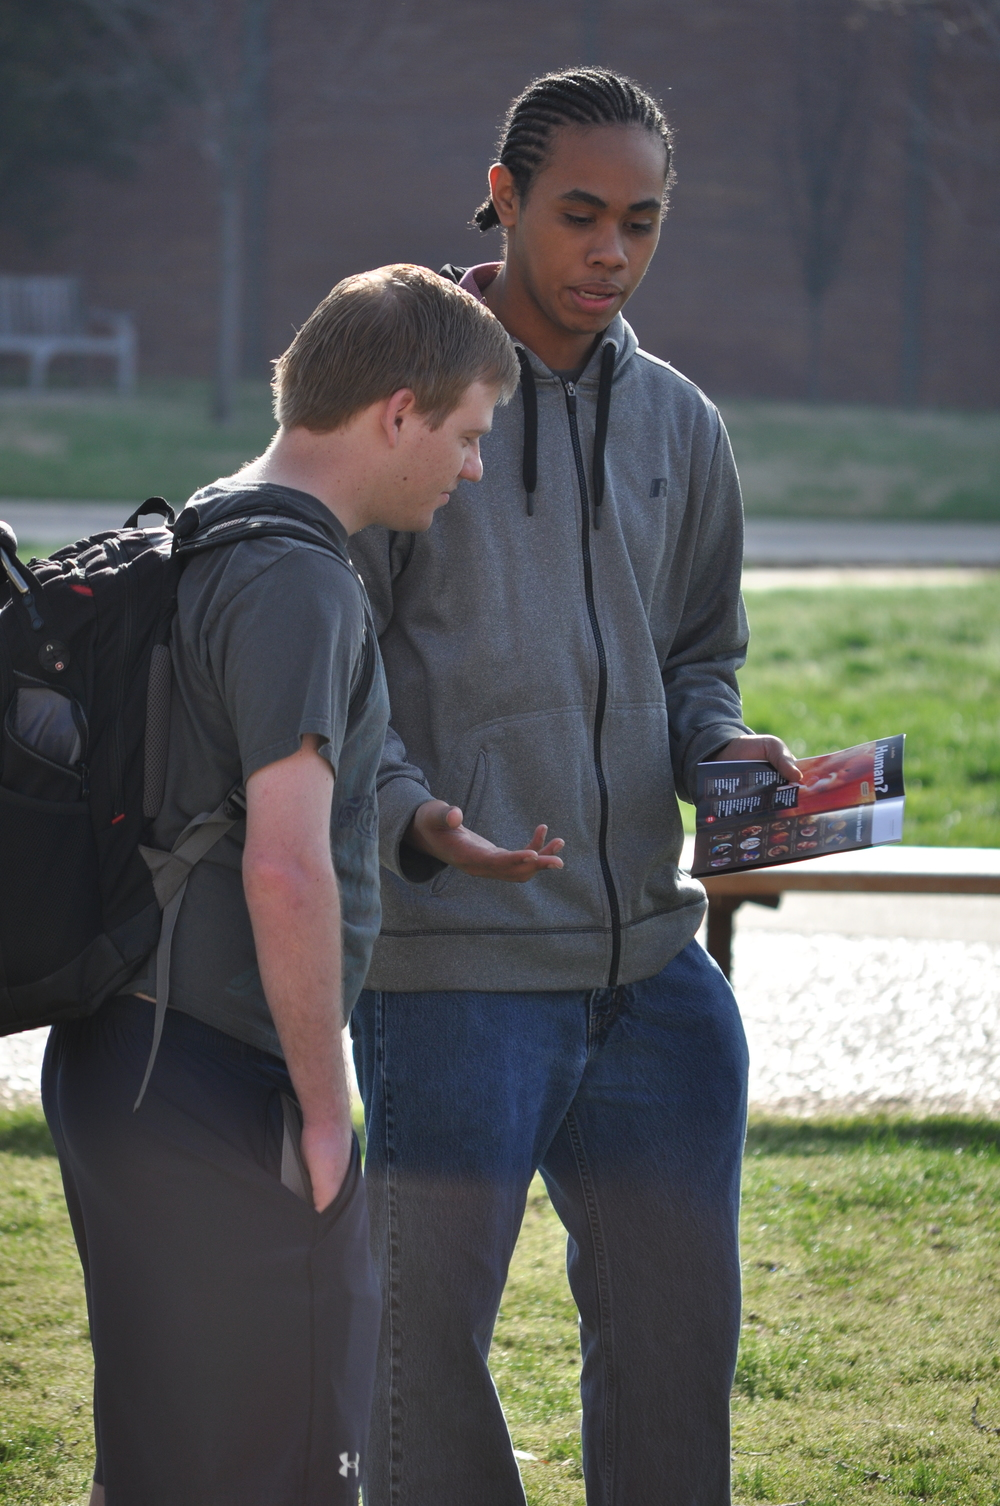 Keawe Bridges (holding brochure) talks with a student at the University of Oklahoma in March 2015.